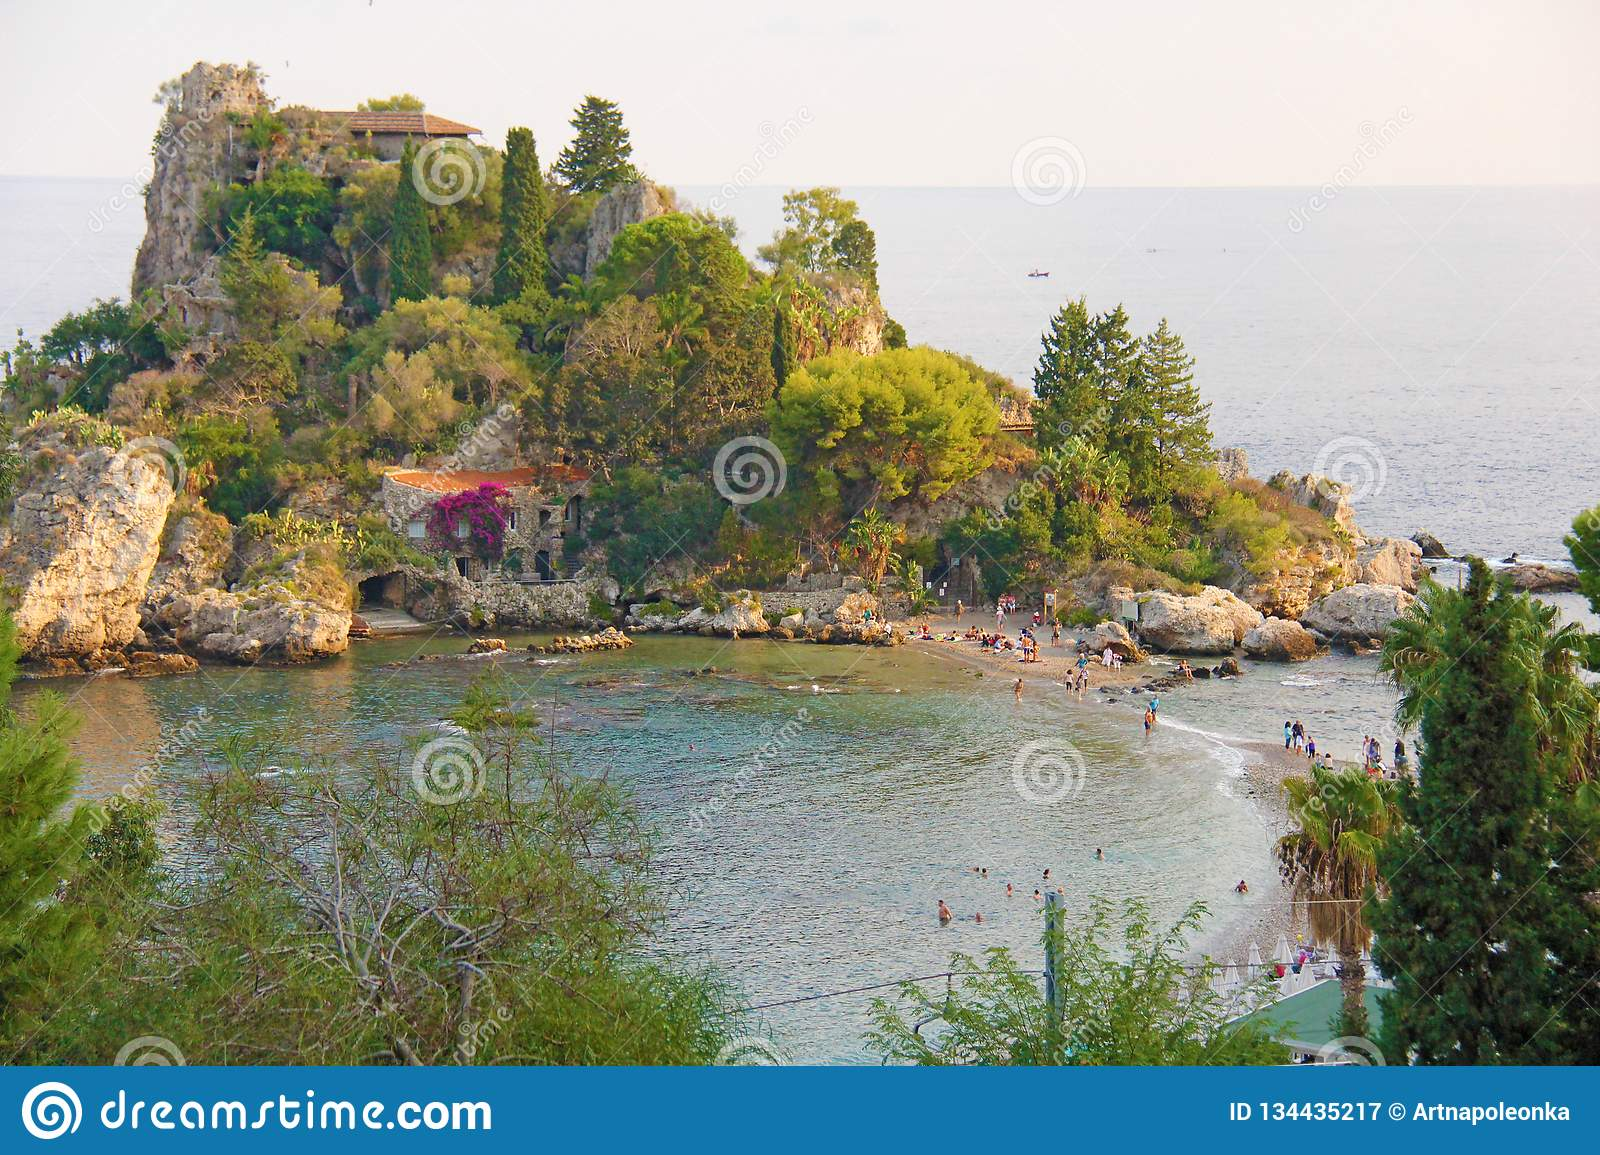 Scenic View of Isola Bella Peninsula in Taormina Town. The island of Sicily, Italy. View of the Sea